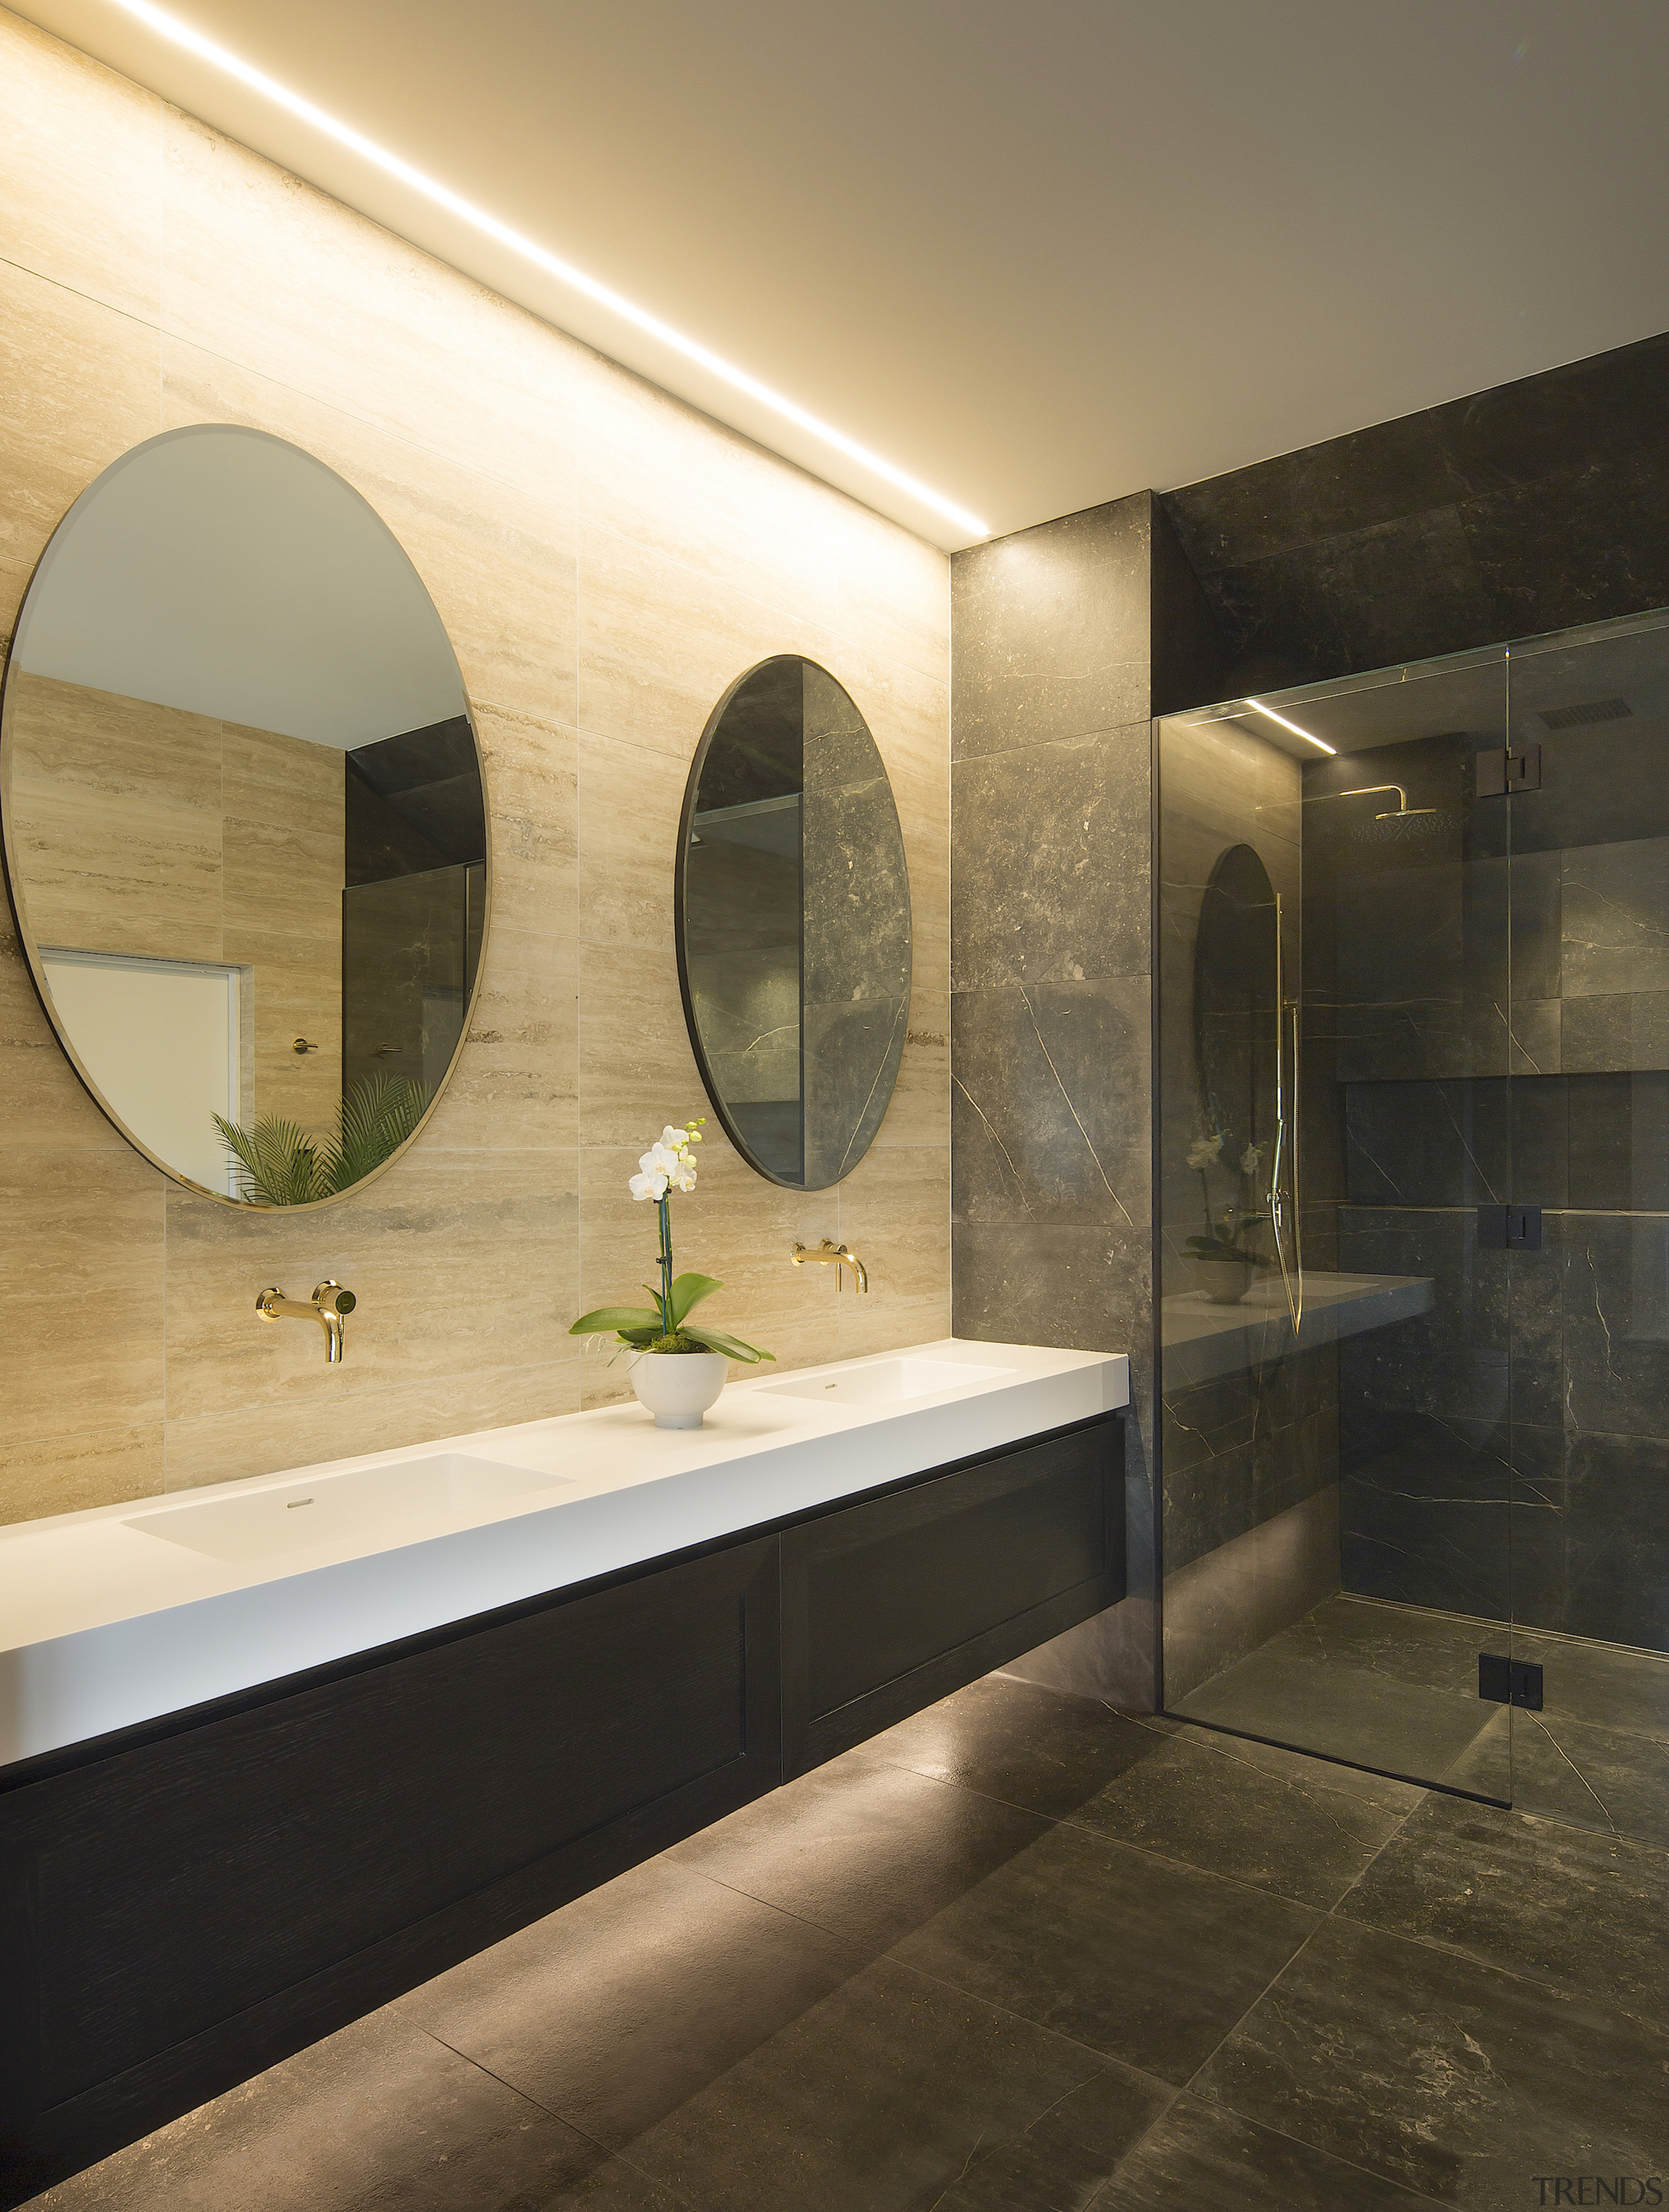 The long suspended vanity adds to the bathroom's